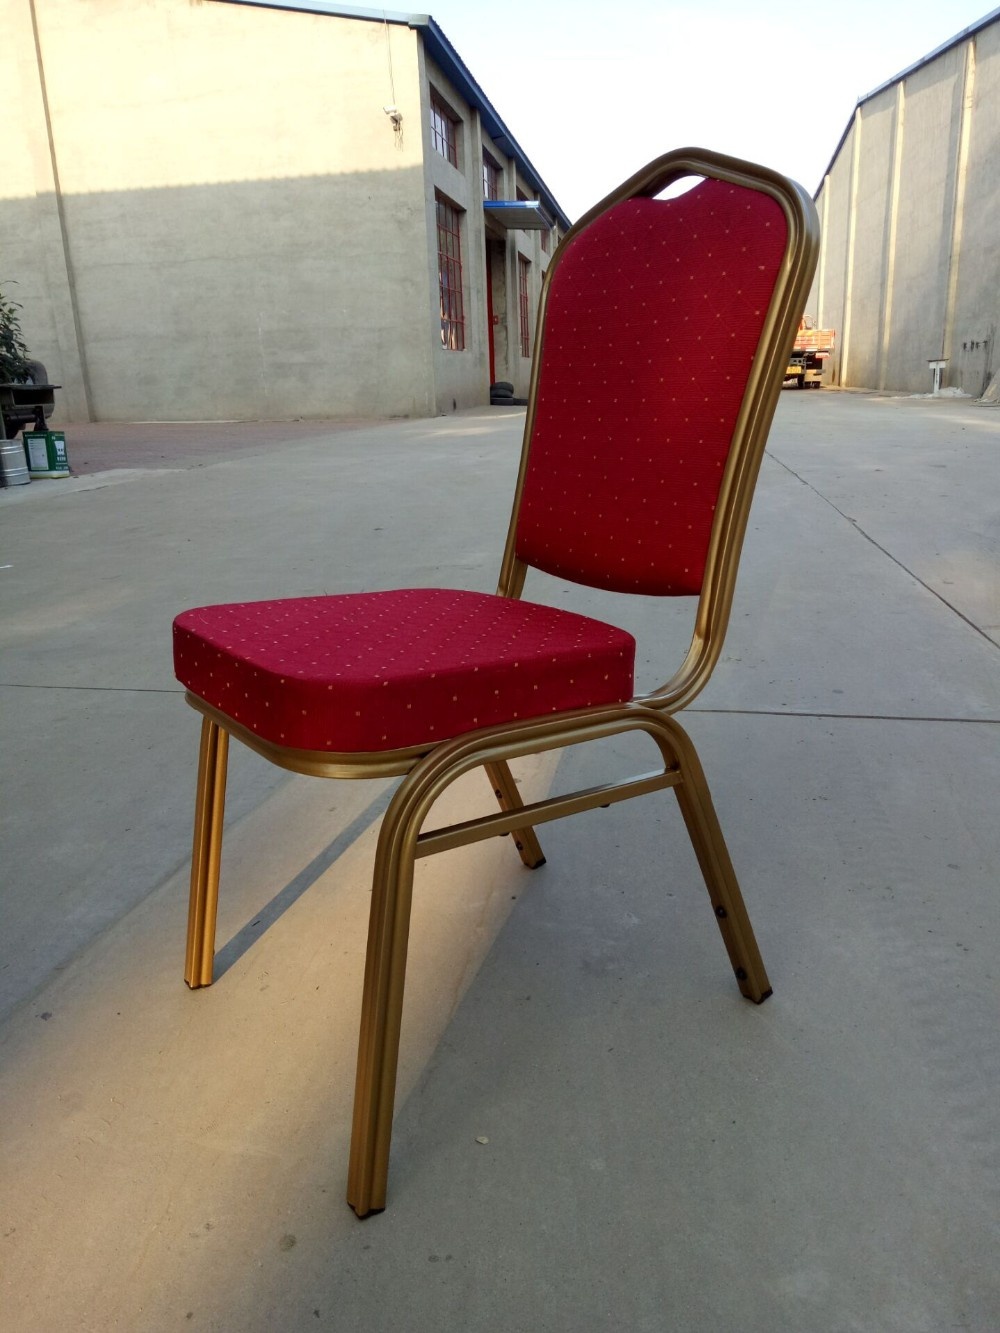 Wholesale Metal Stacking Banquet Chairs Buy Wholesale Metal Stacking Banquet Chairs Metal Stacking Banquet Chairs Wholesale Stacking Banquet Chairs